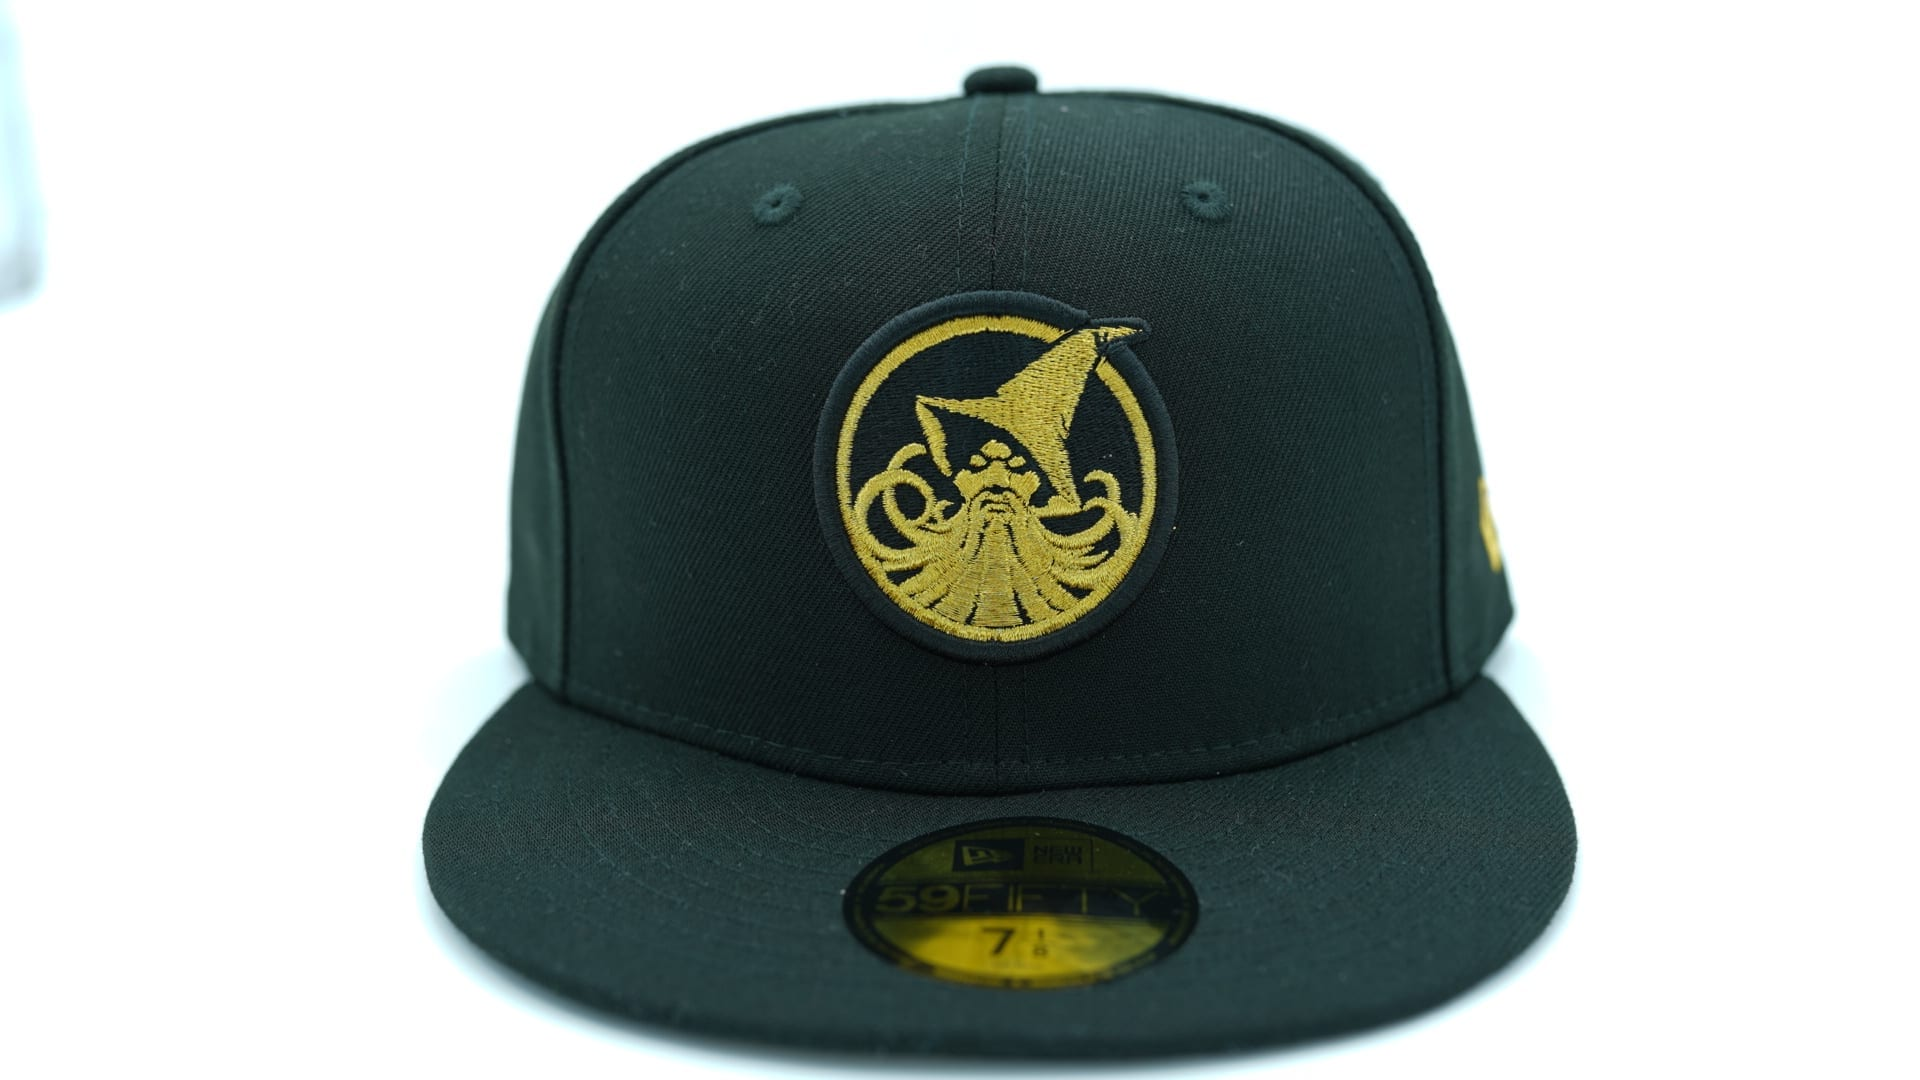 Strictly Fitteds custom fitted baseball cap